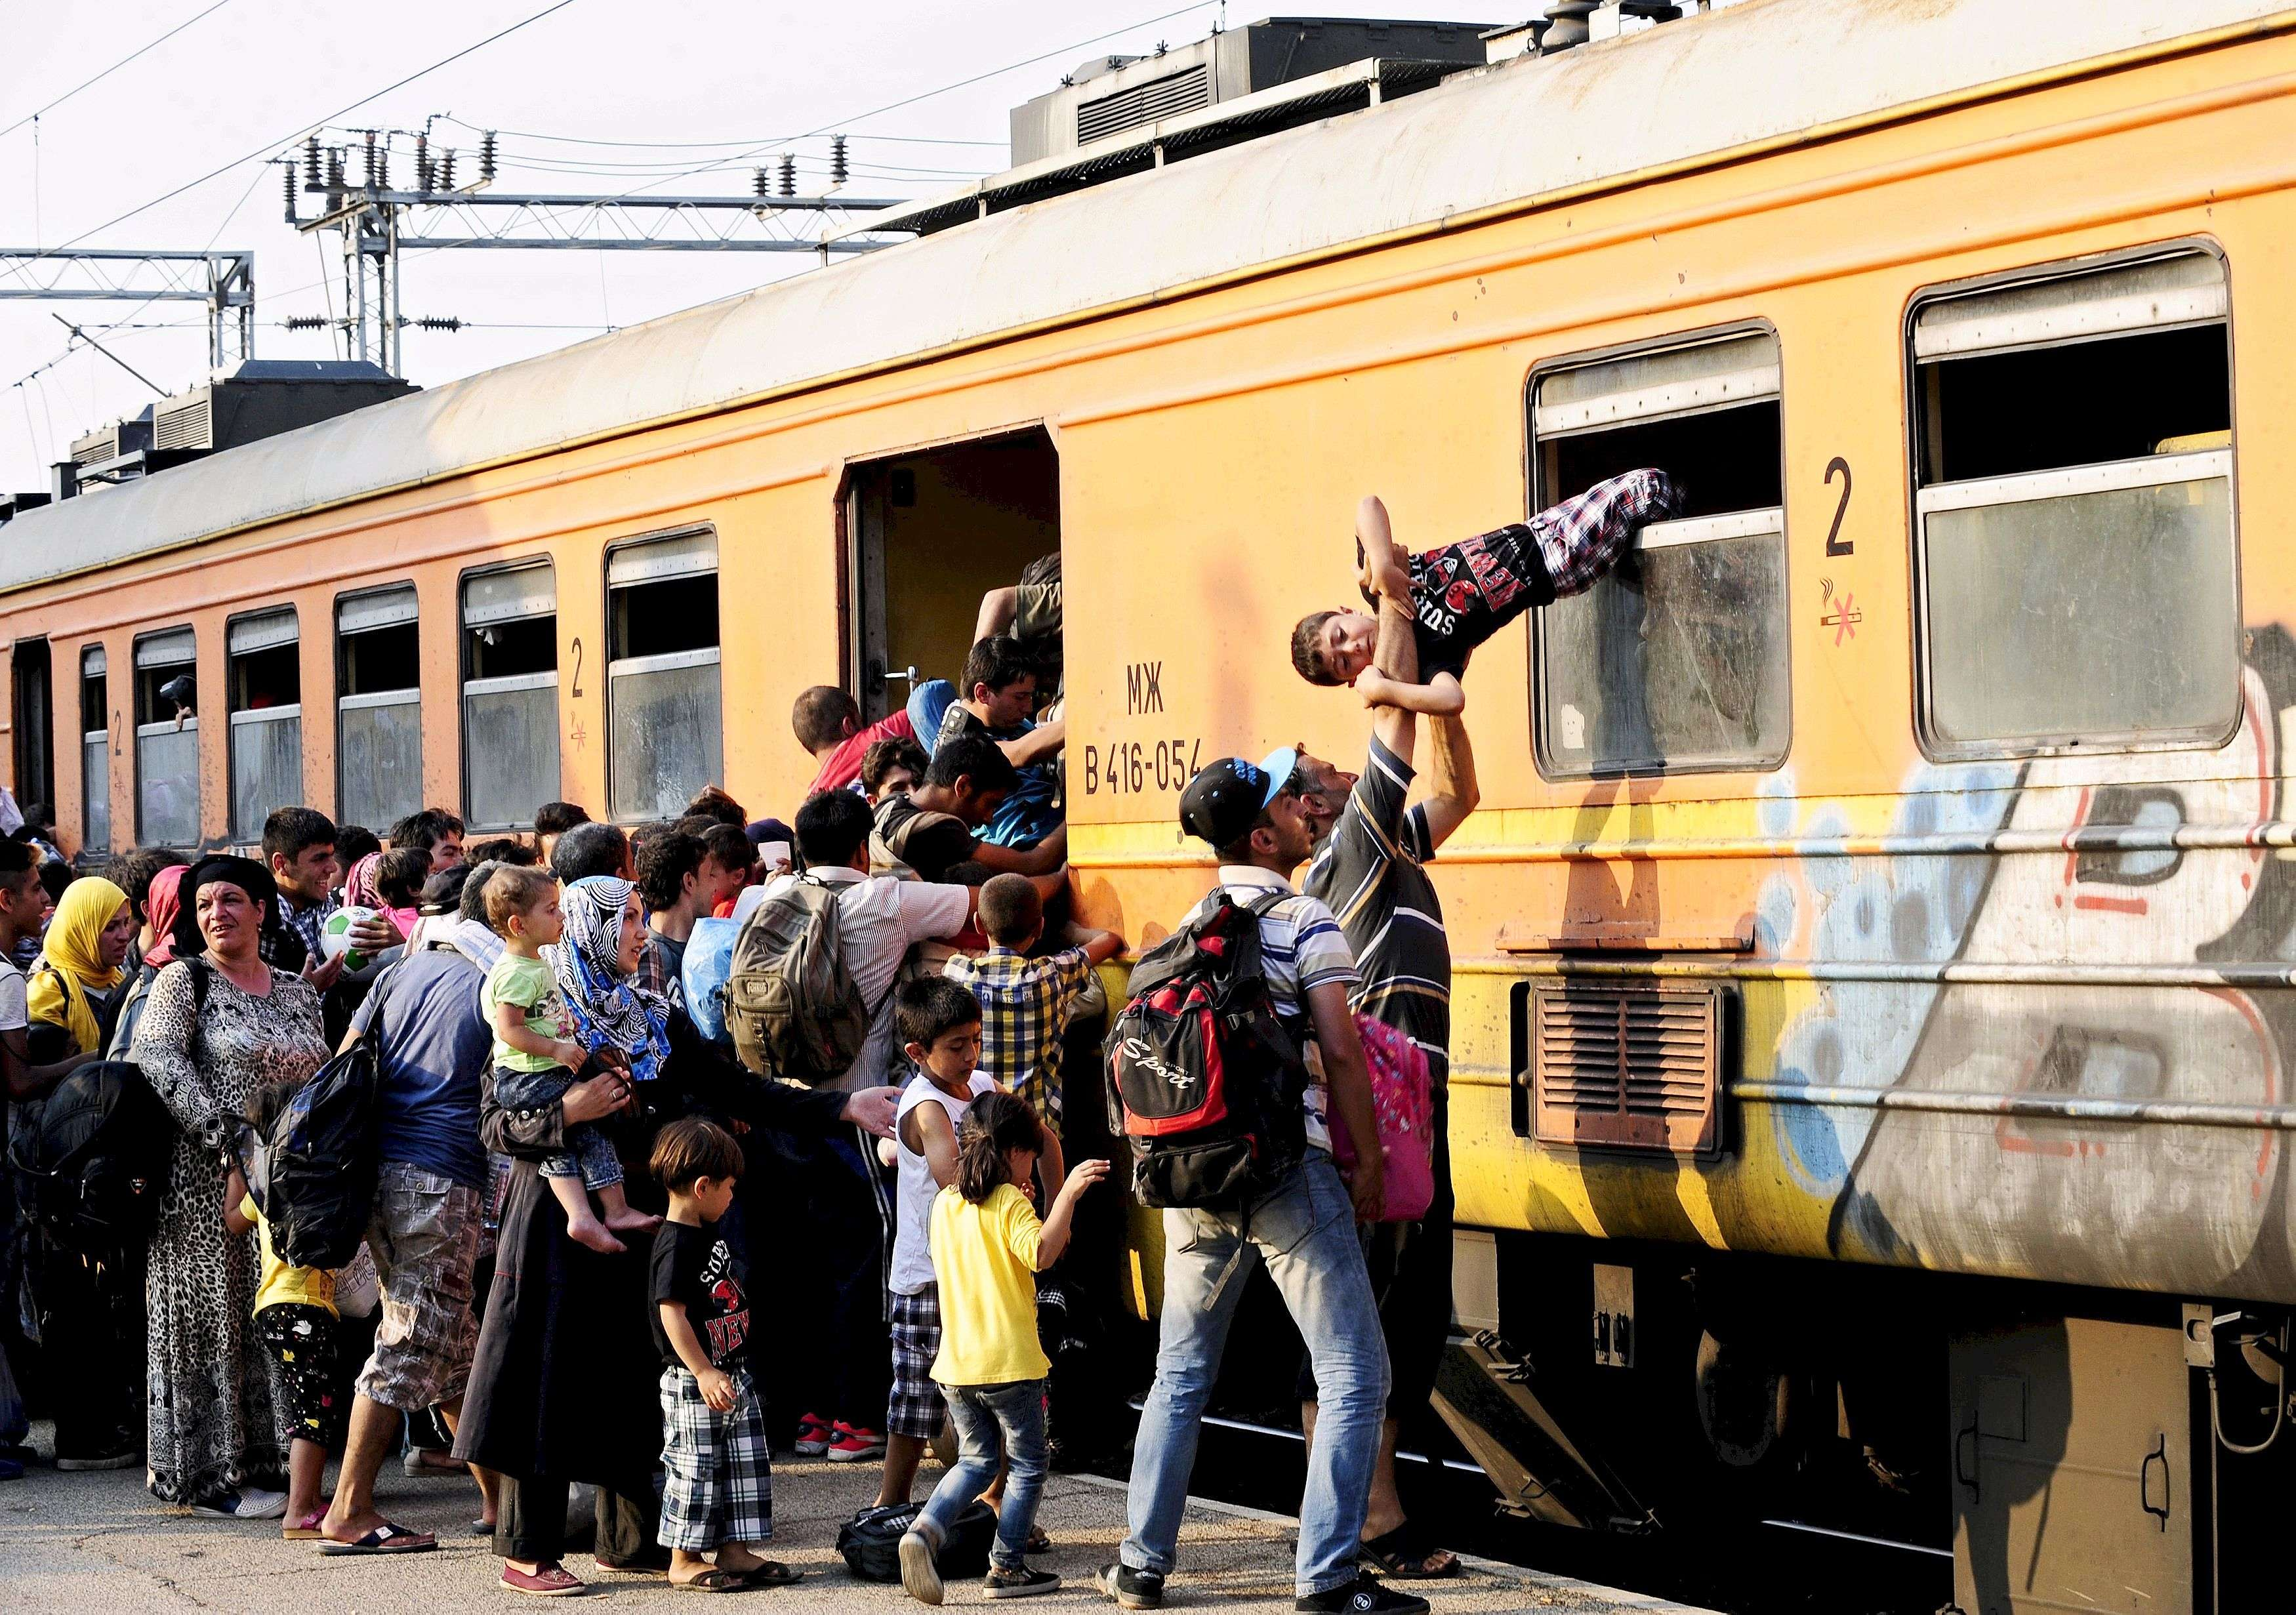 "Migrants clamber onto a train at Gevgelija train station in Macedonia, close to the border with Greece July 30, 2015. Tens of thousands of migrants, mainly from the Middle East and Africa, use the Balkans route to get into the European Union, passing from Greece to Macedonia and Serbia and then to western Europe. After walking across the border into Macedonia to the small local station of Gevgelia, migrants pile onto an overcrowded four-carriage train in sweltering heat, young infants among them, to travel about 200 km north. Their aim: to enter Serbia on foot, another step in their uncertain search for a better life.  REUTERS/Ognen Teofilovski TPX IMAGES OF THE DAYPICTURE 16 OF 33 FOR WIDER IMAGE STORY ""MIGRANTS: A TRAIN TOWARDS A NEW LIFE""SEARCH ""TEOFILOVSKI TRAIN"" FOR ALL PICTURES"